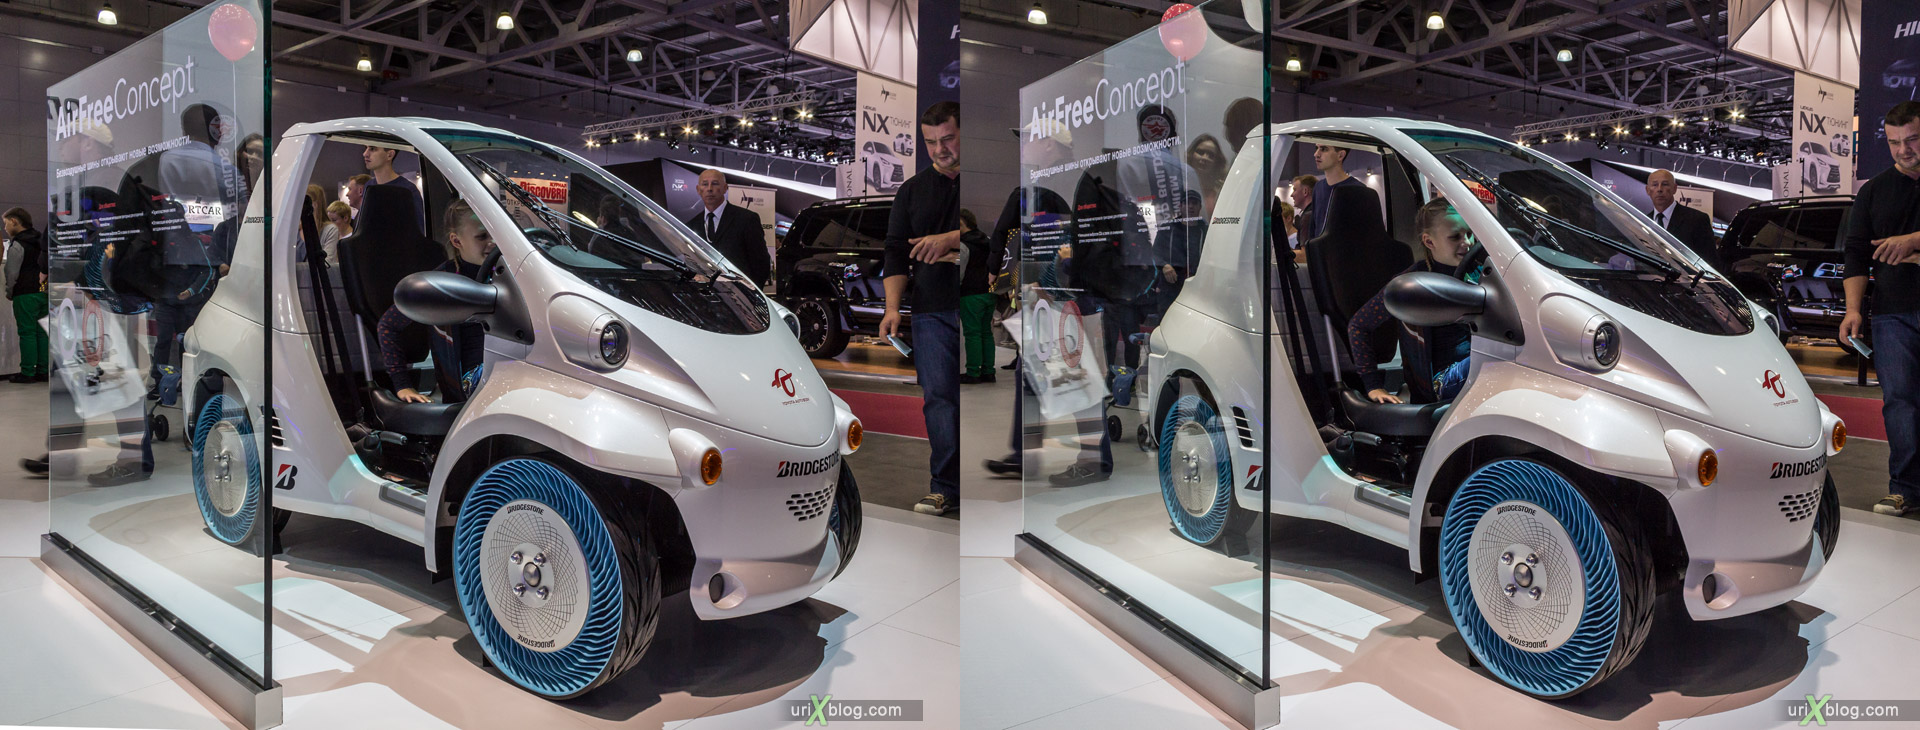 2014, Bridgestone Air-Free Concept tires, Moscow International Automobile Salon, MIAS, Crocus Expo, Moscow, Russia, augest, 3D, stereo pair, cross-eyed, crossview, cross view stereo pair, stereoscopic